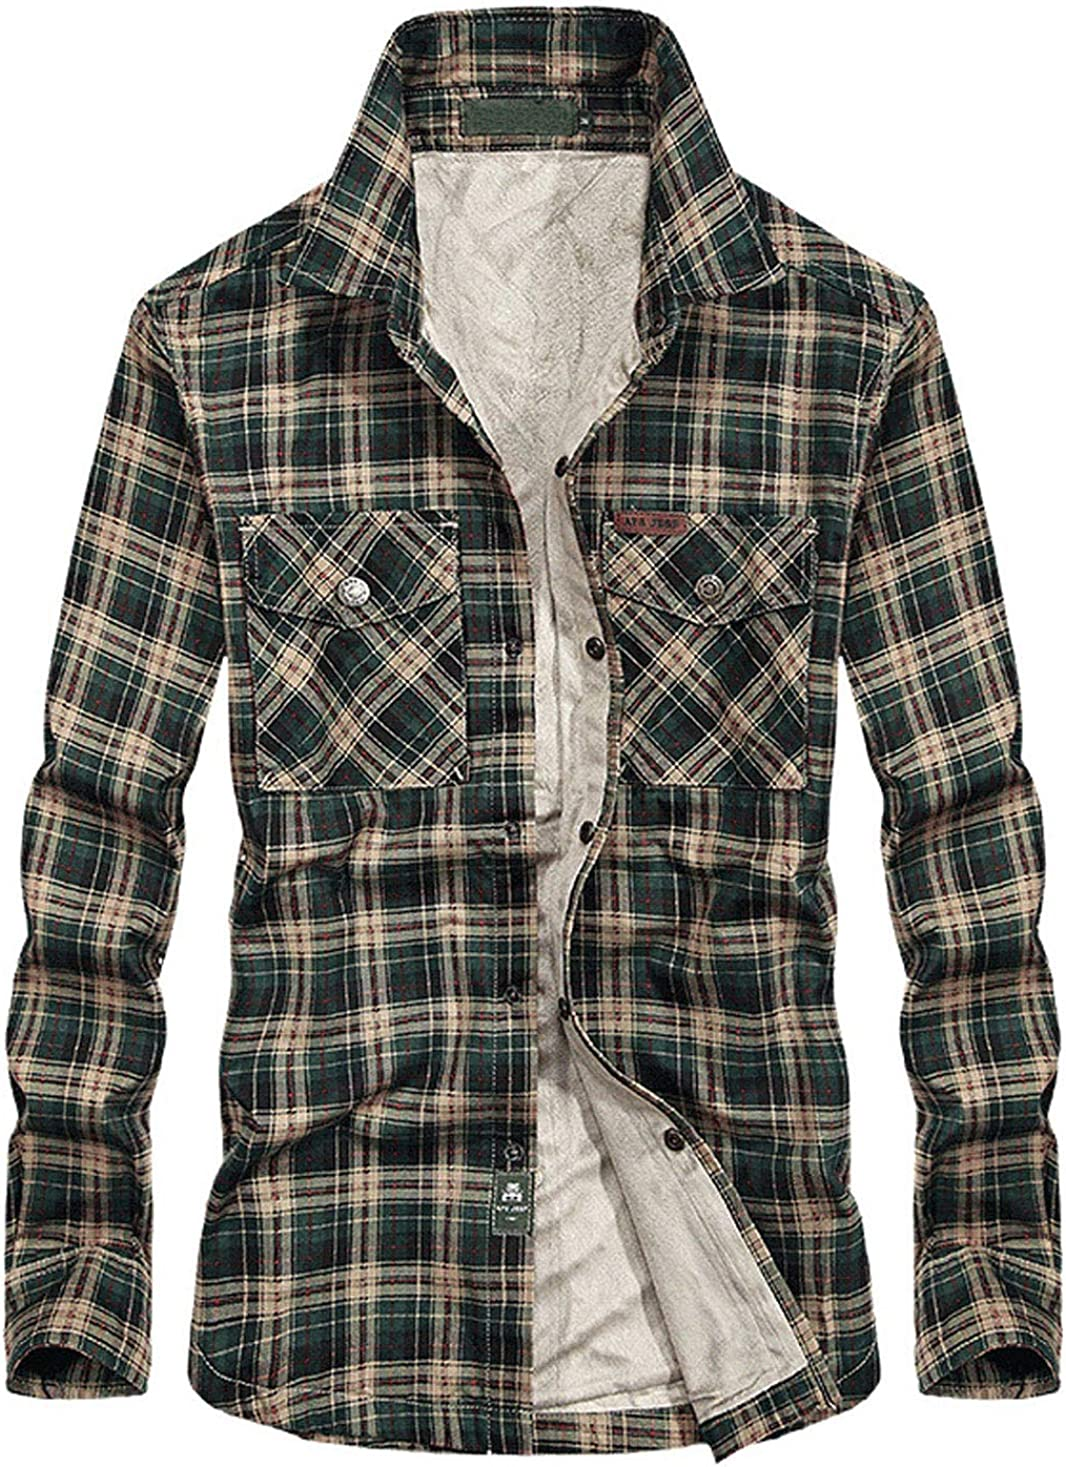 CHARTOU Men's Thermal Button-Down Fleece Lined Flannel Plaid Twill Work Shirt Jacket